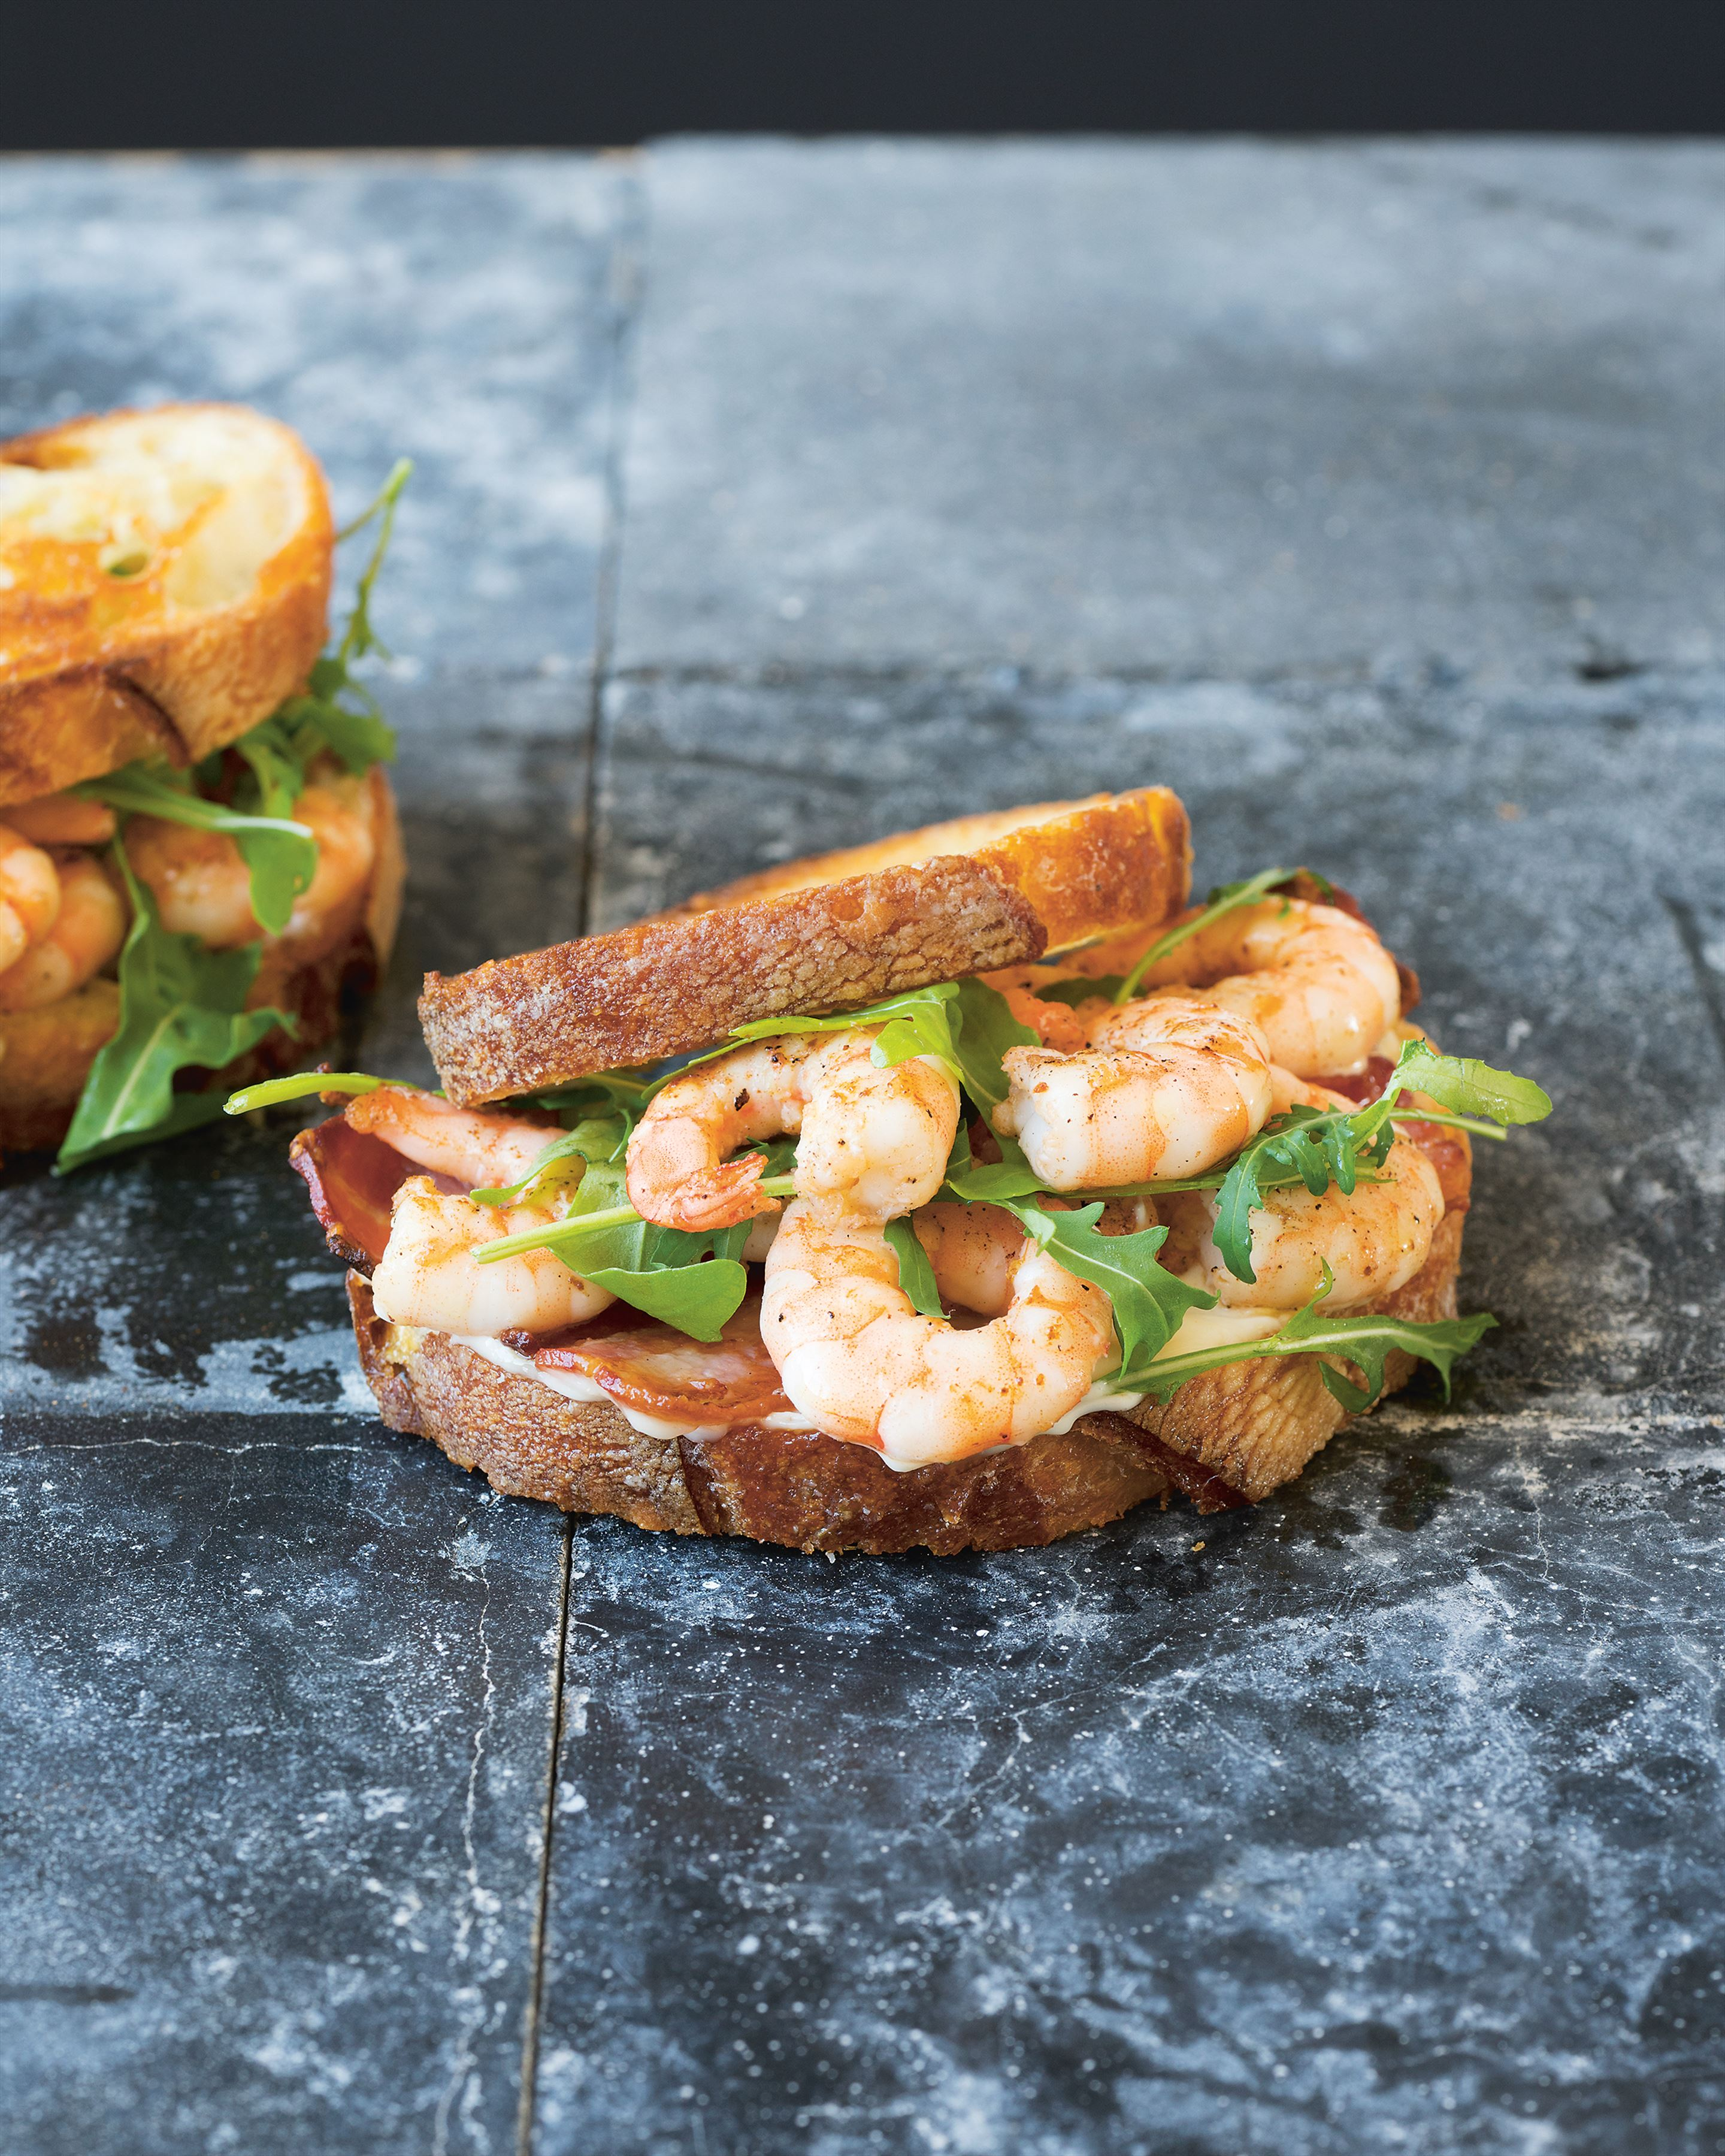 King prawn, bacon & garlic